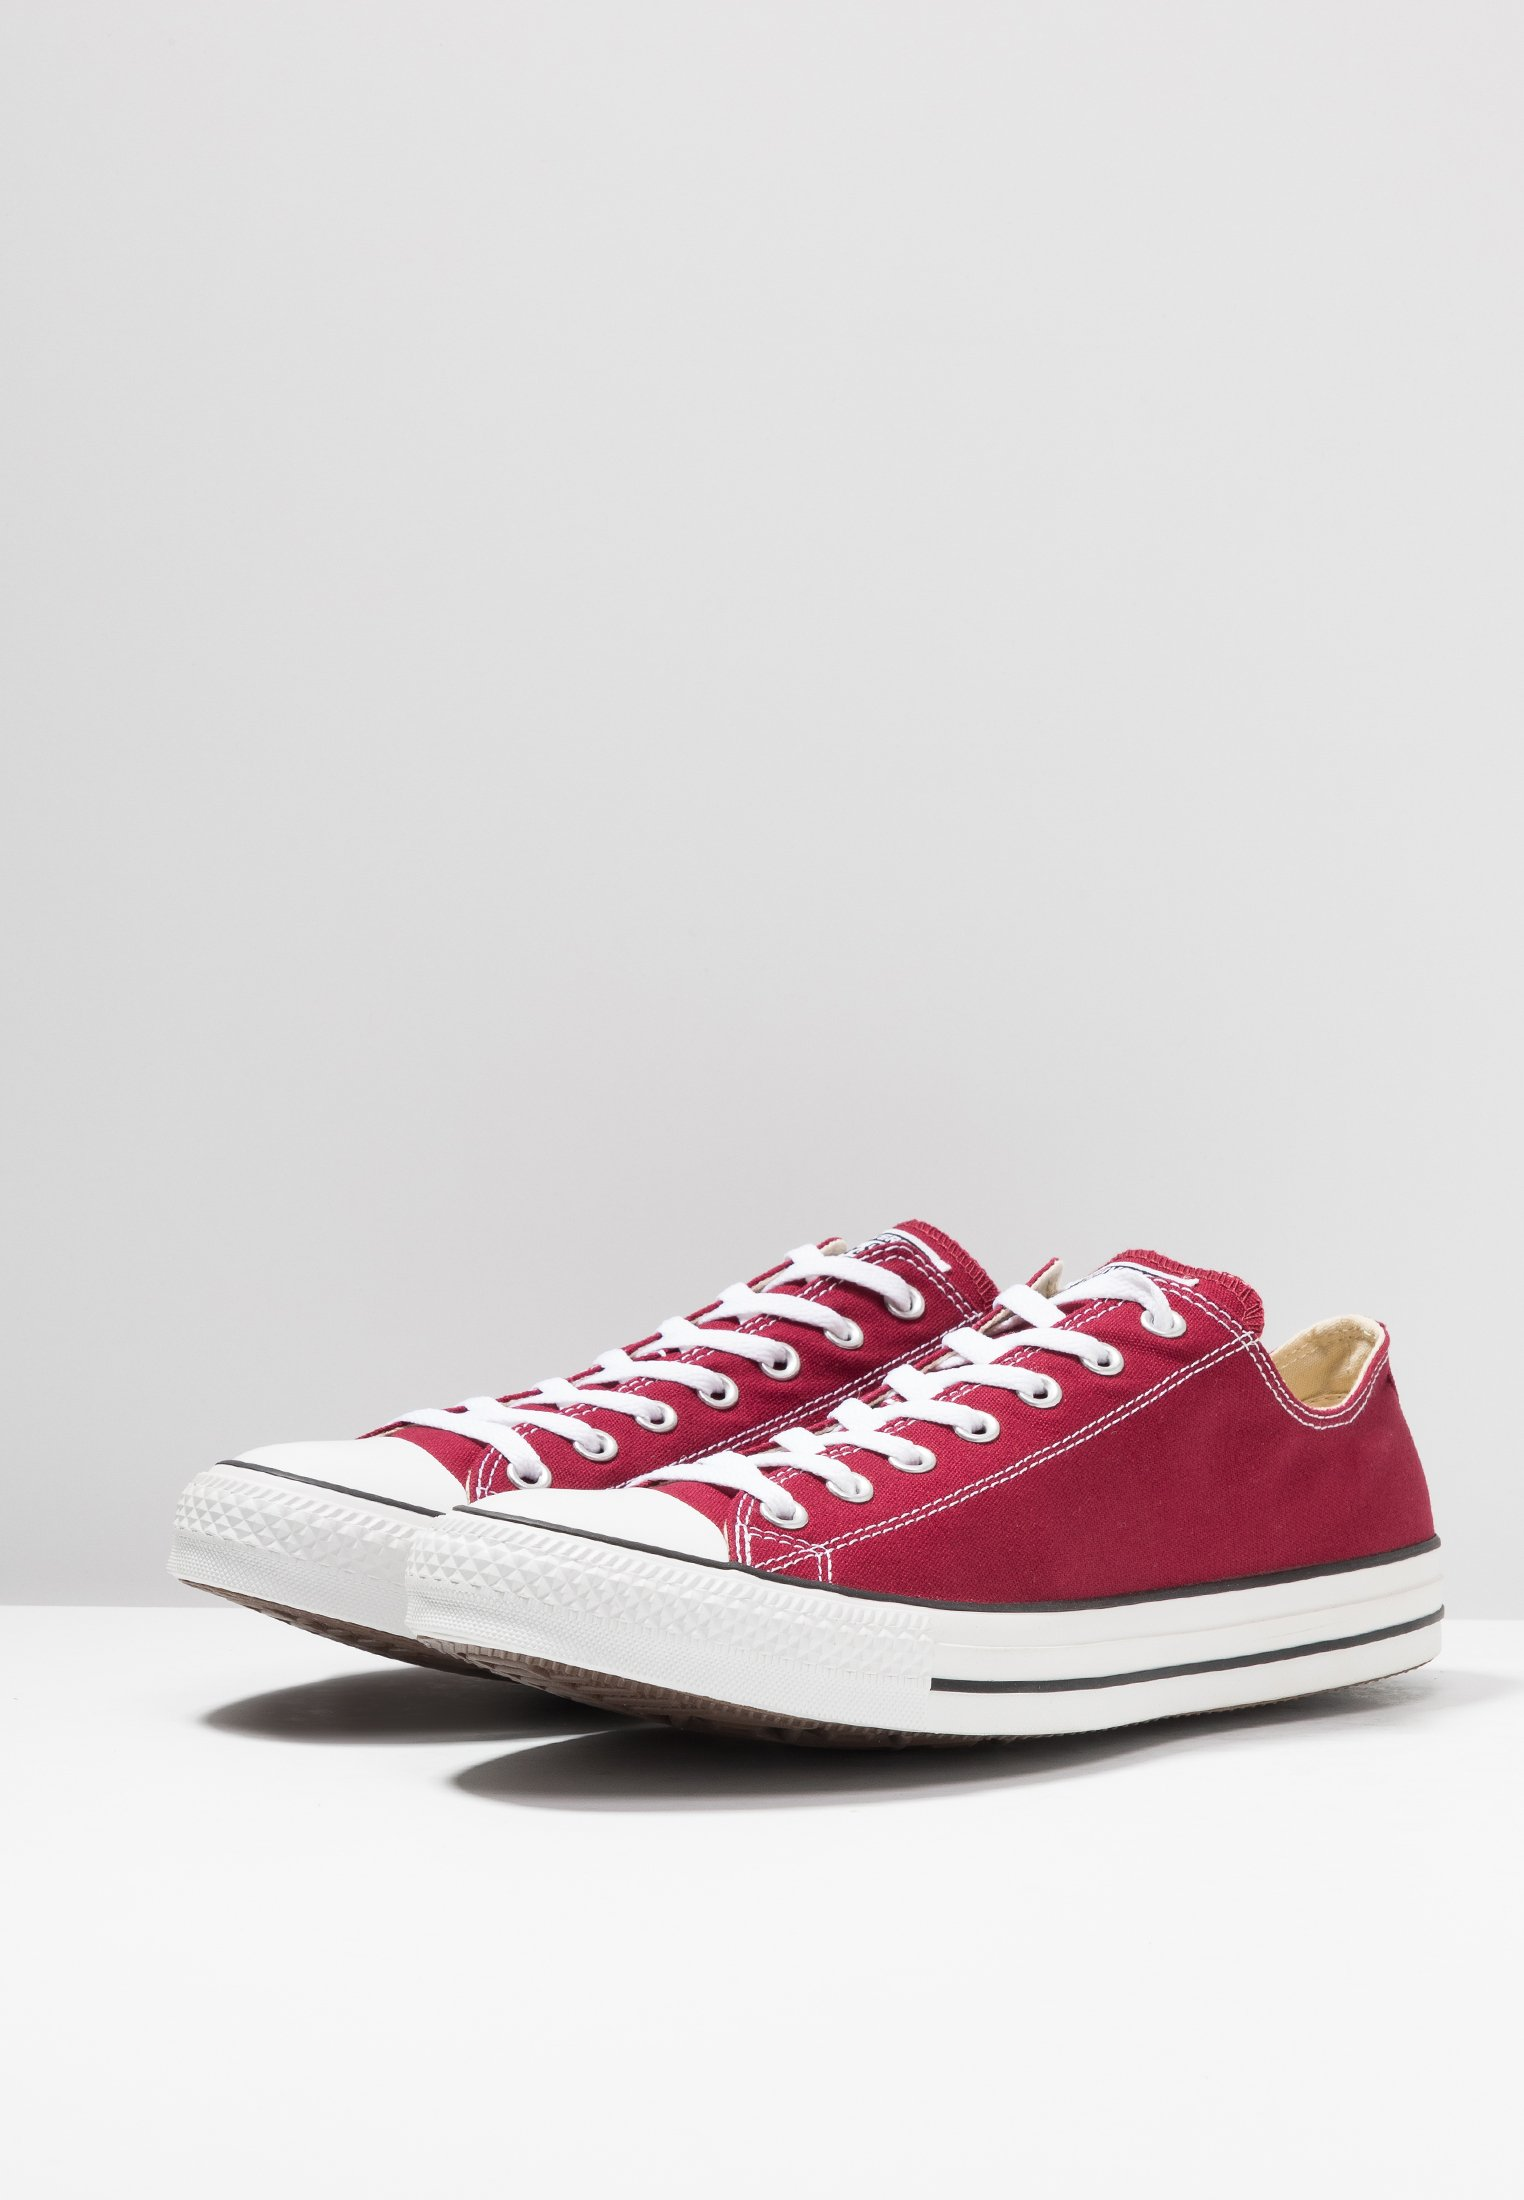 Converse CHUCK TAYLOR ALL STAR OX - Sneakers - maroon